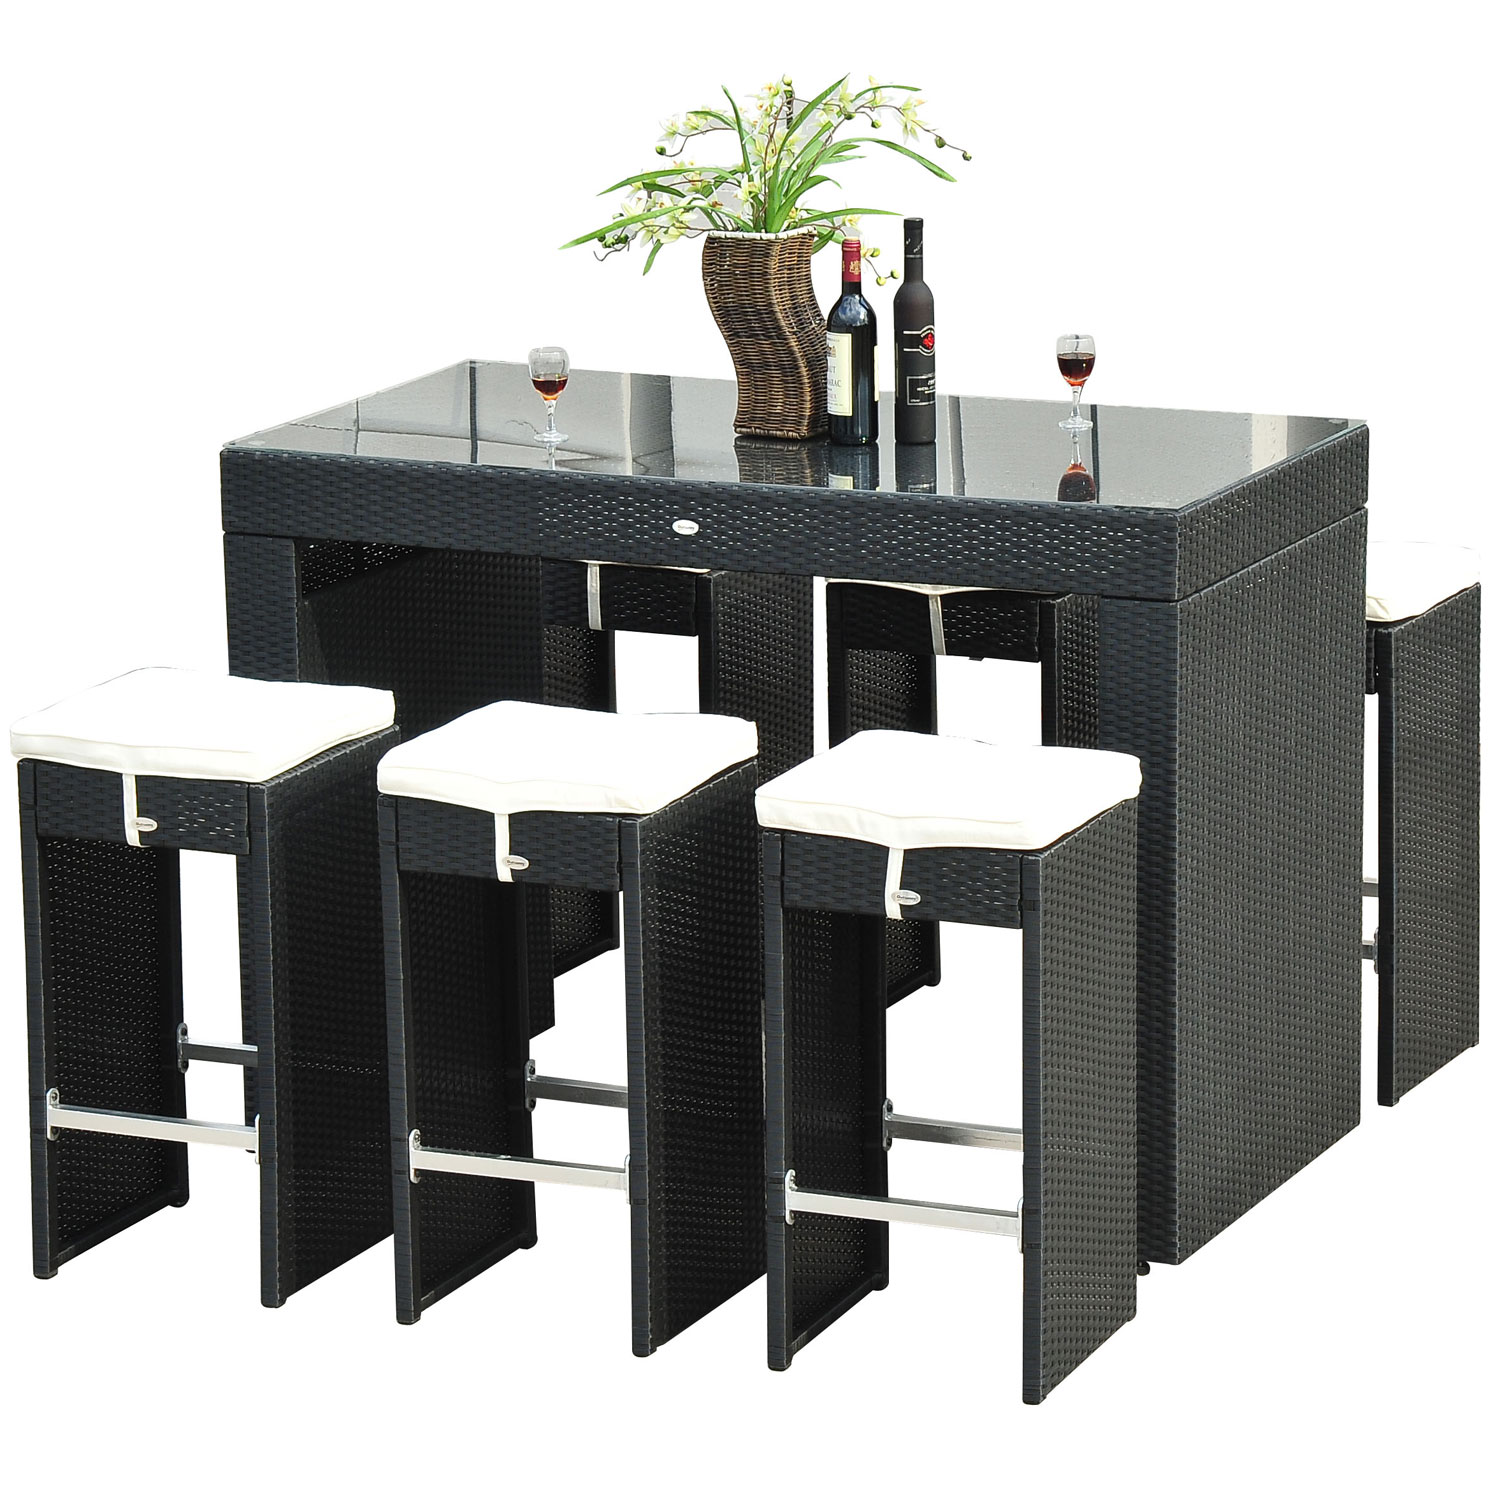 Outsunny 7 Piece Outdoor Rattan Wicker Bar Pub Table & Chairs Patio Dining Room Set Black by Aosom